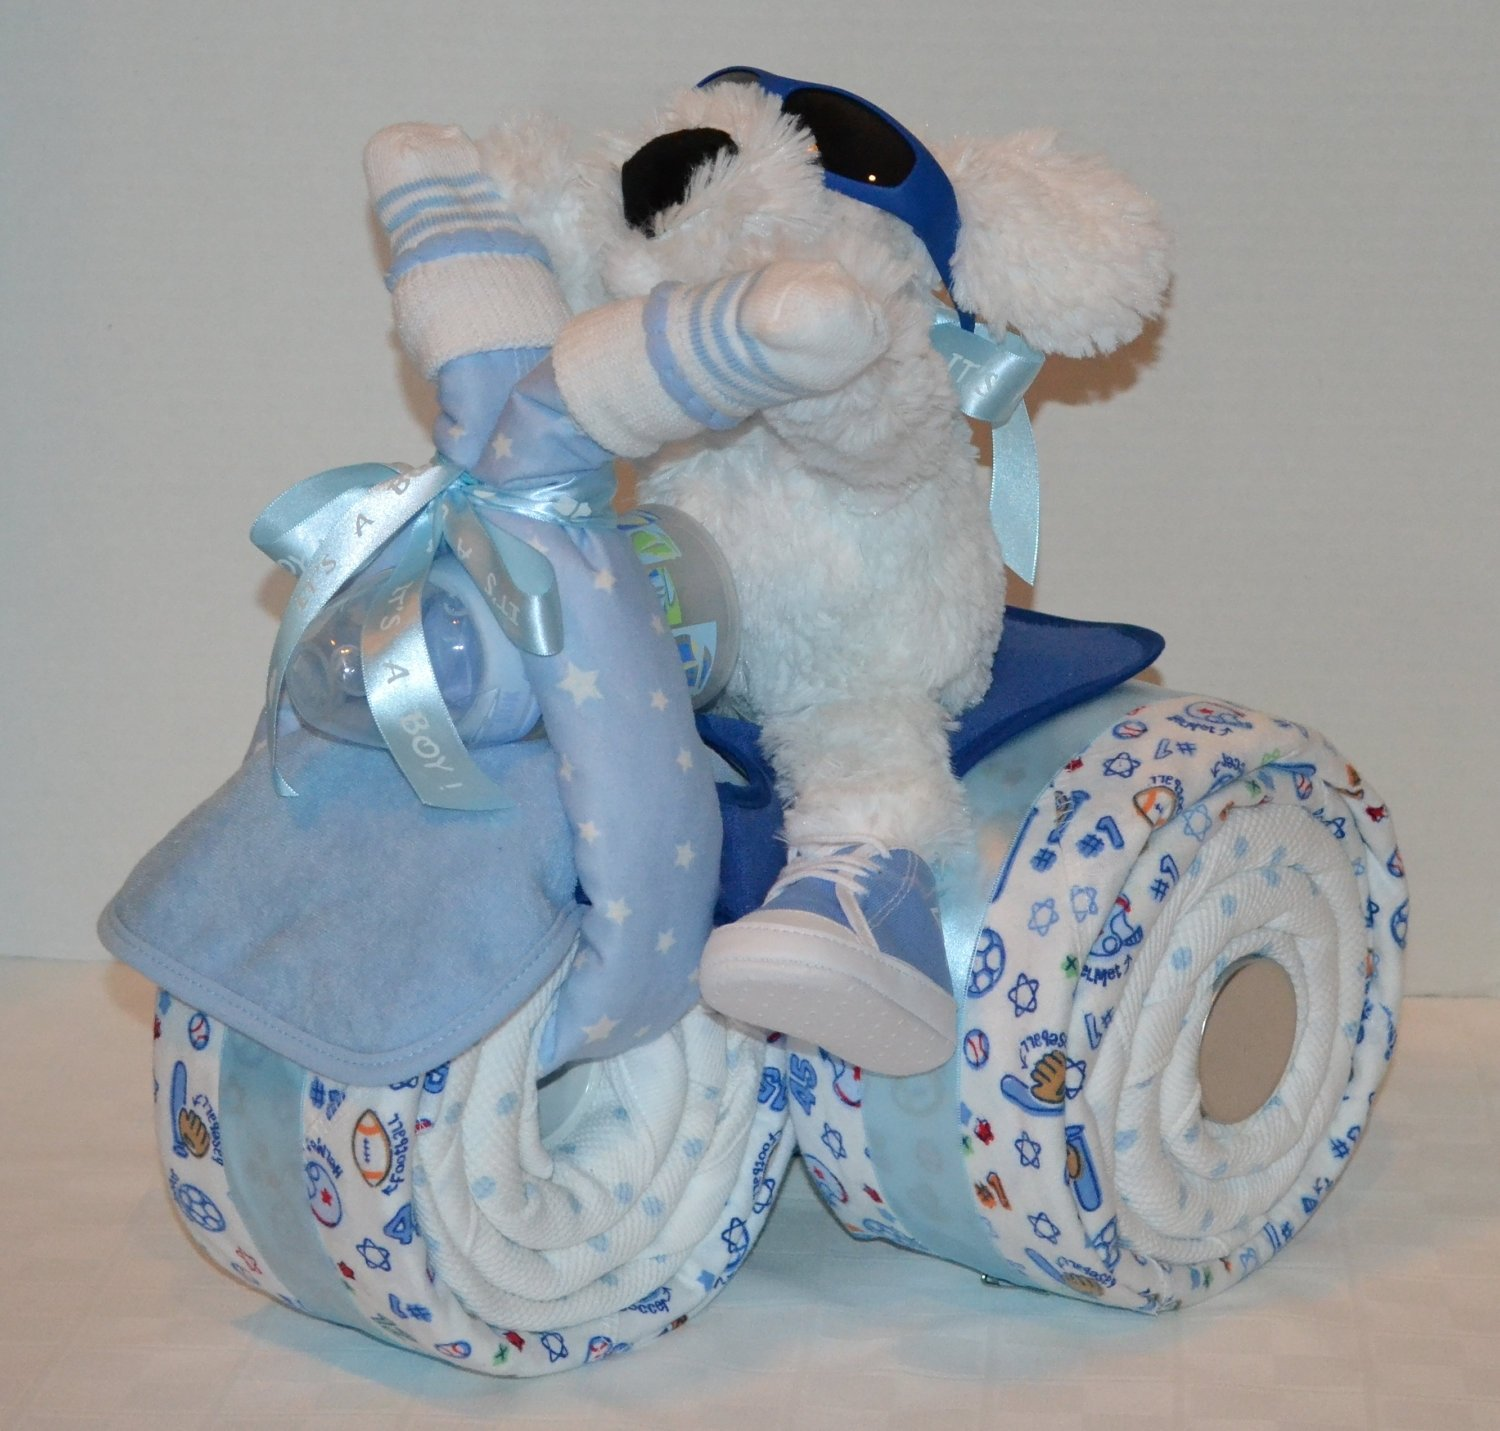 10 Fabulous Ideas For Baby Shower Gifts ideas for baby boy baby shower omega center ideas for baby 1 2020